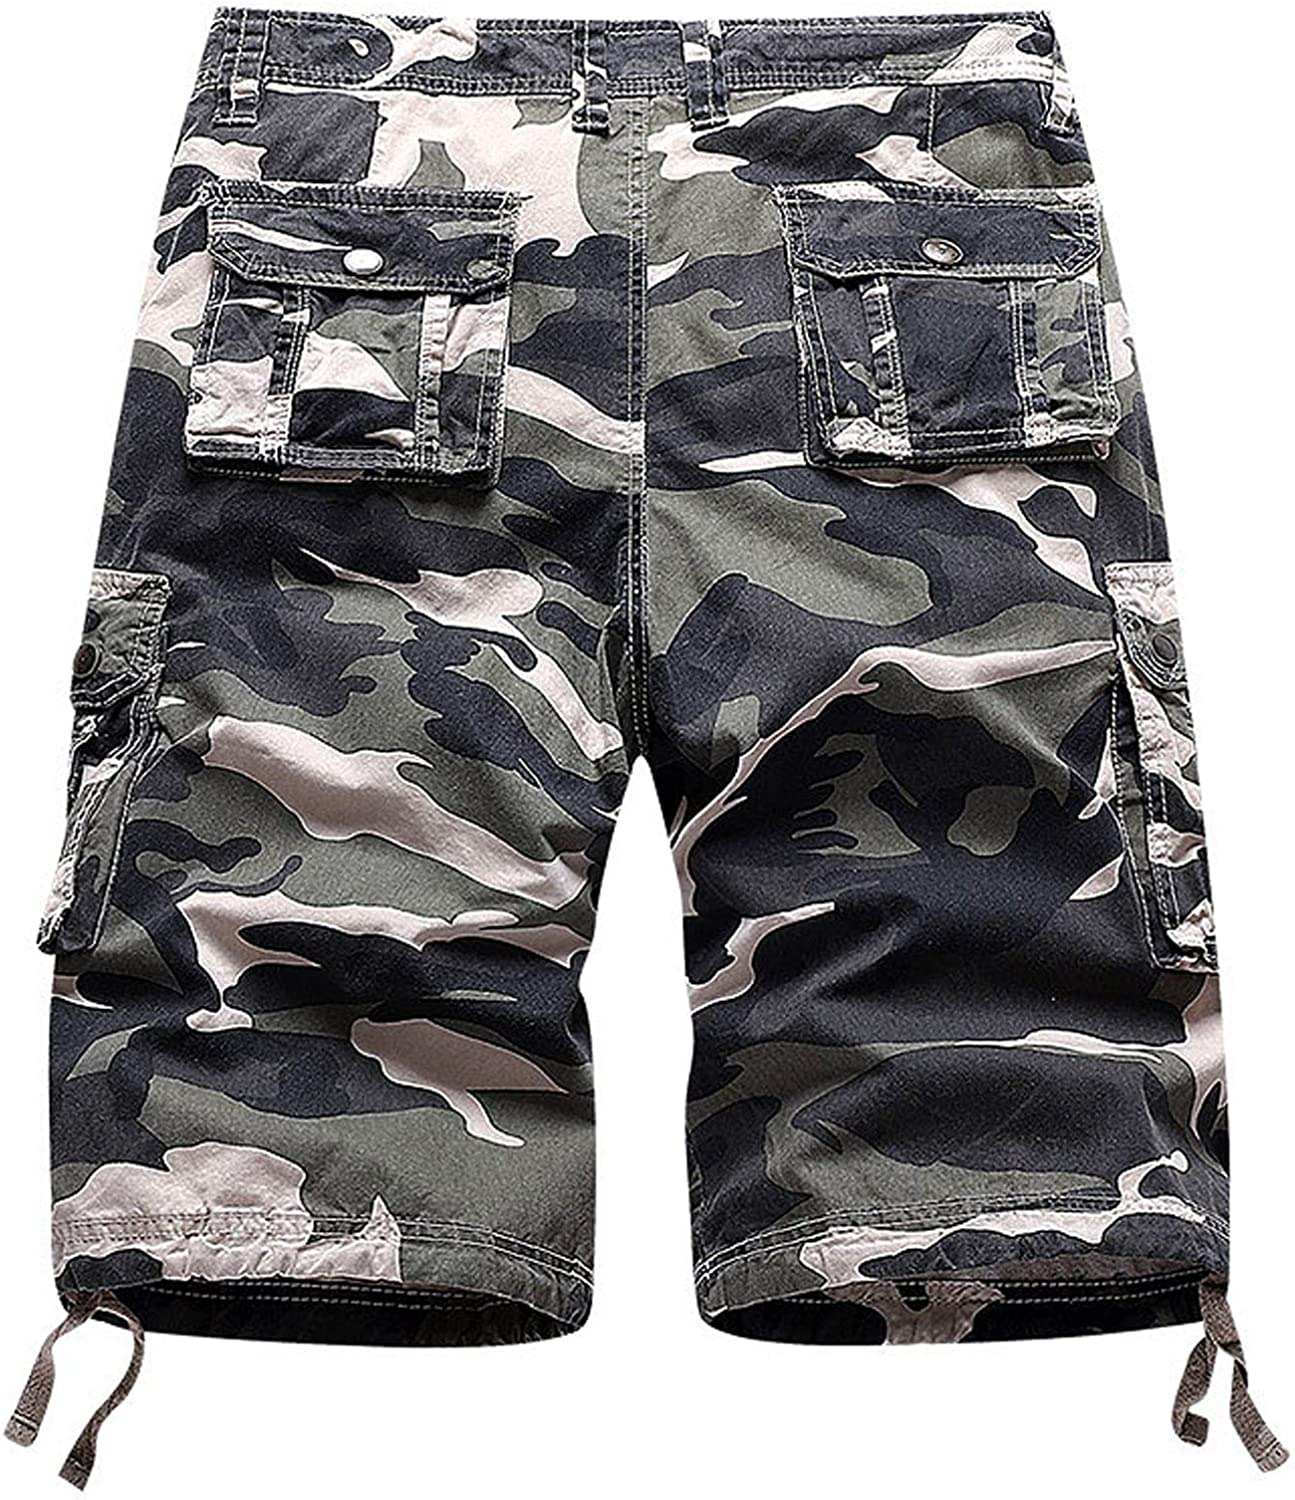 Multi-Pocket Cargo Shorts for Men's Summer Outdoor Casual Athletic Shorts Relax Fit Overalls Short Pants - Limsea